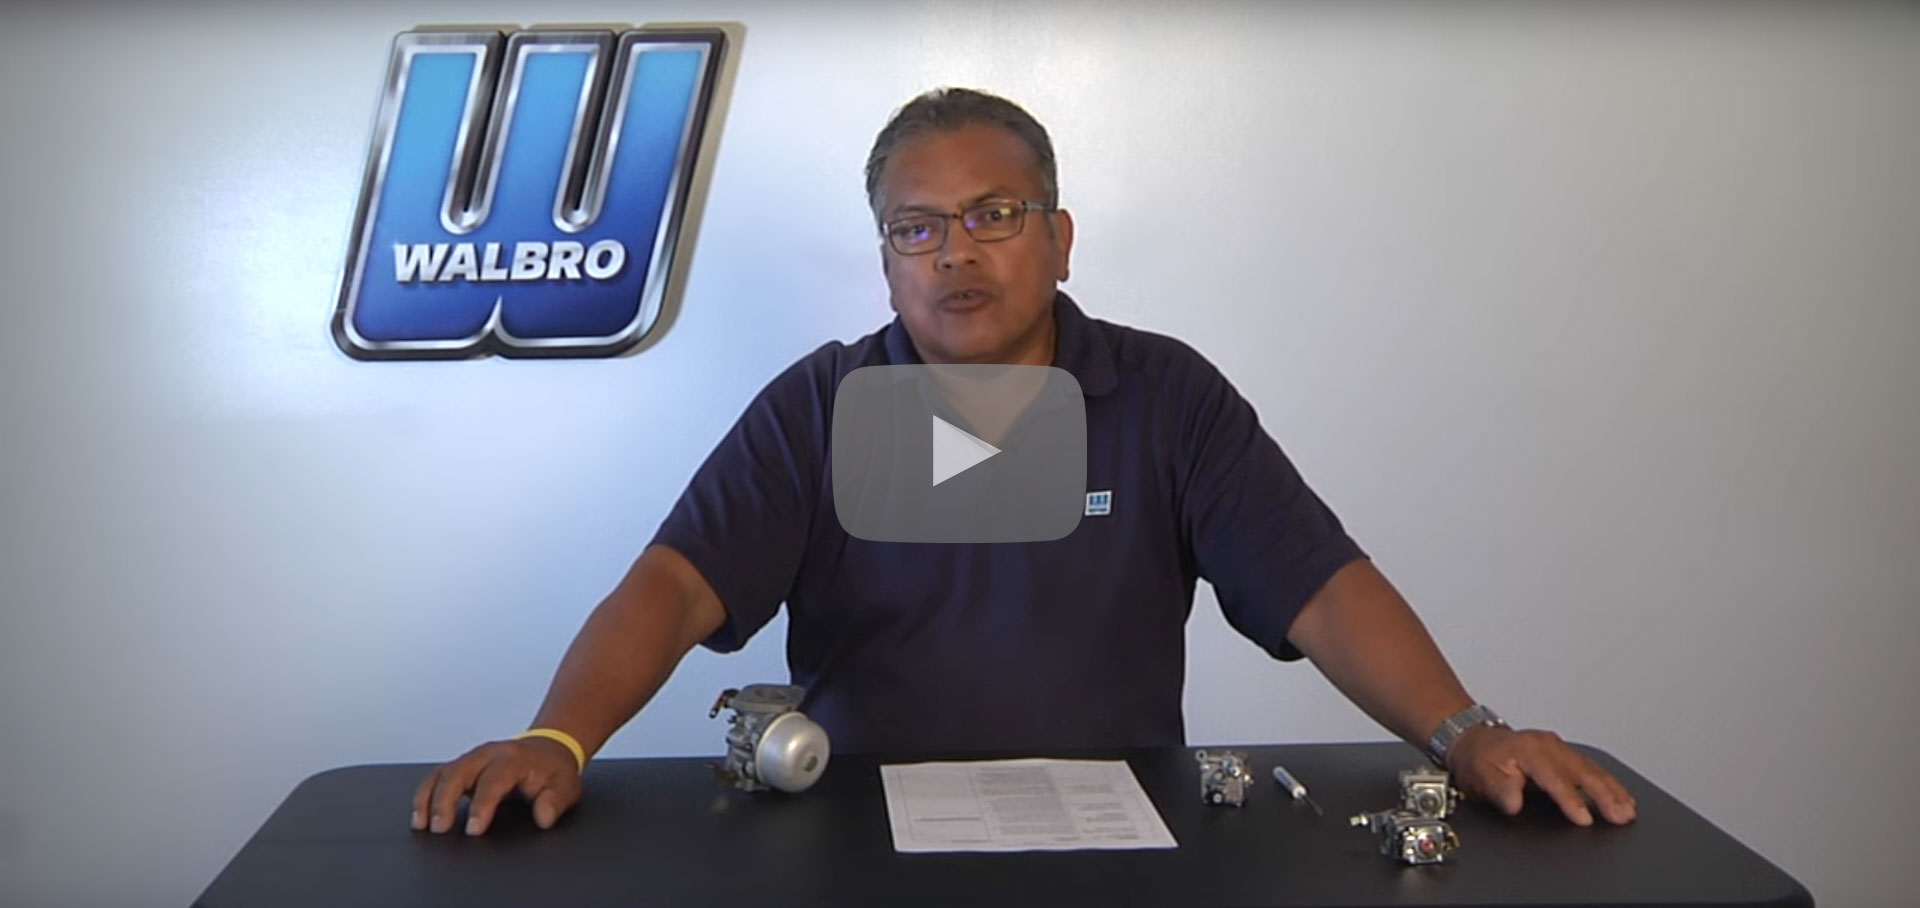 How to Find the Part Number on a Walbro Carburetor - Walbro